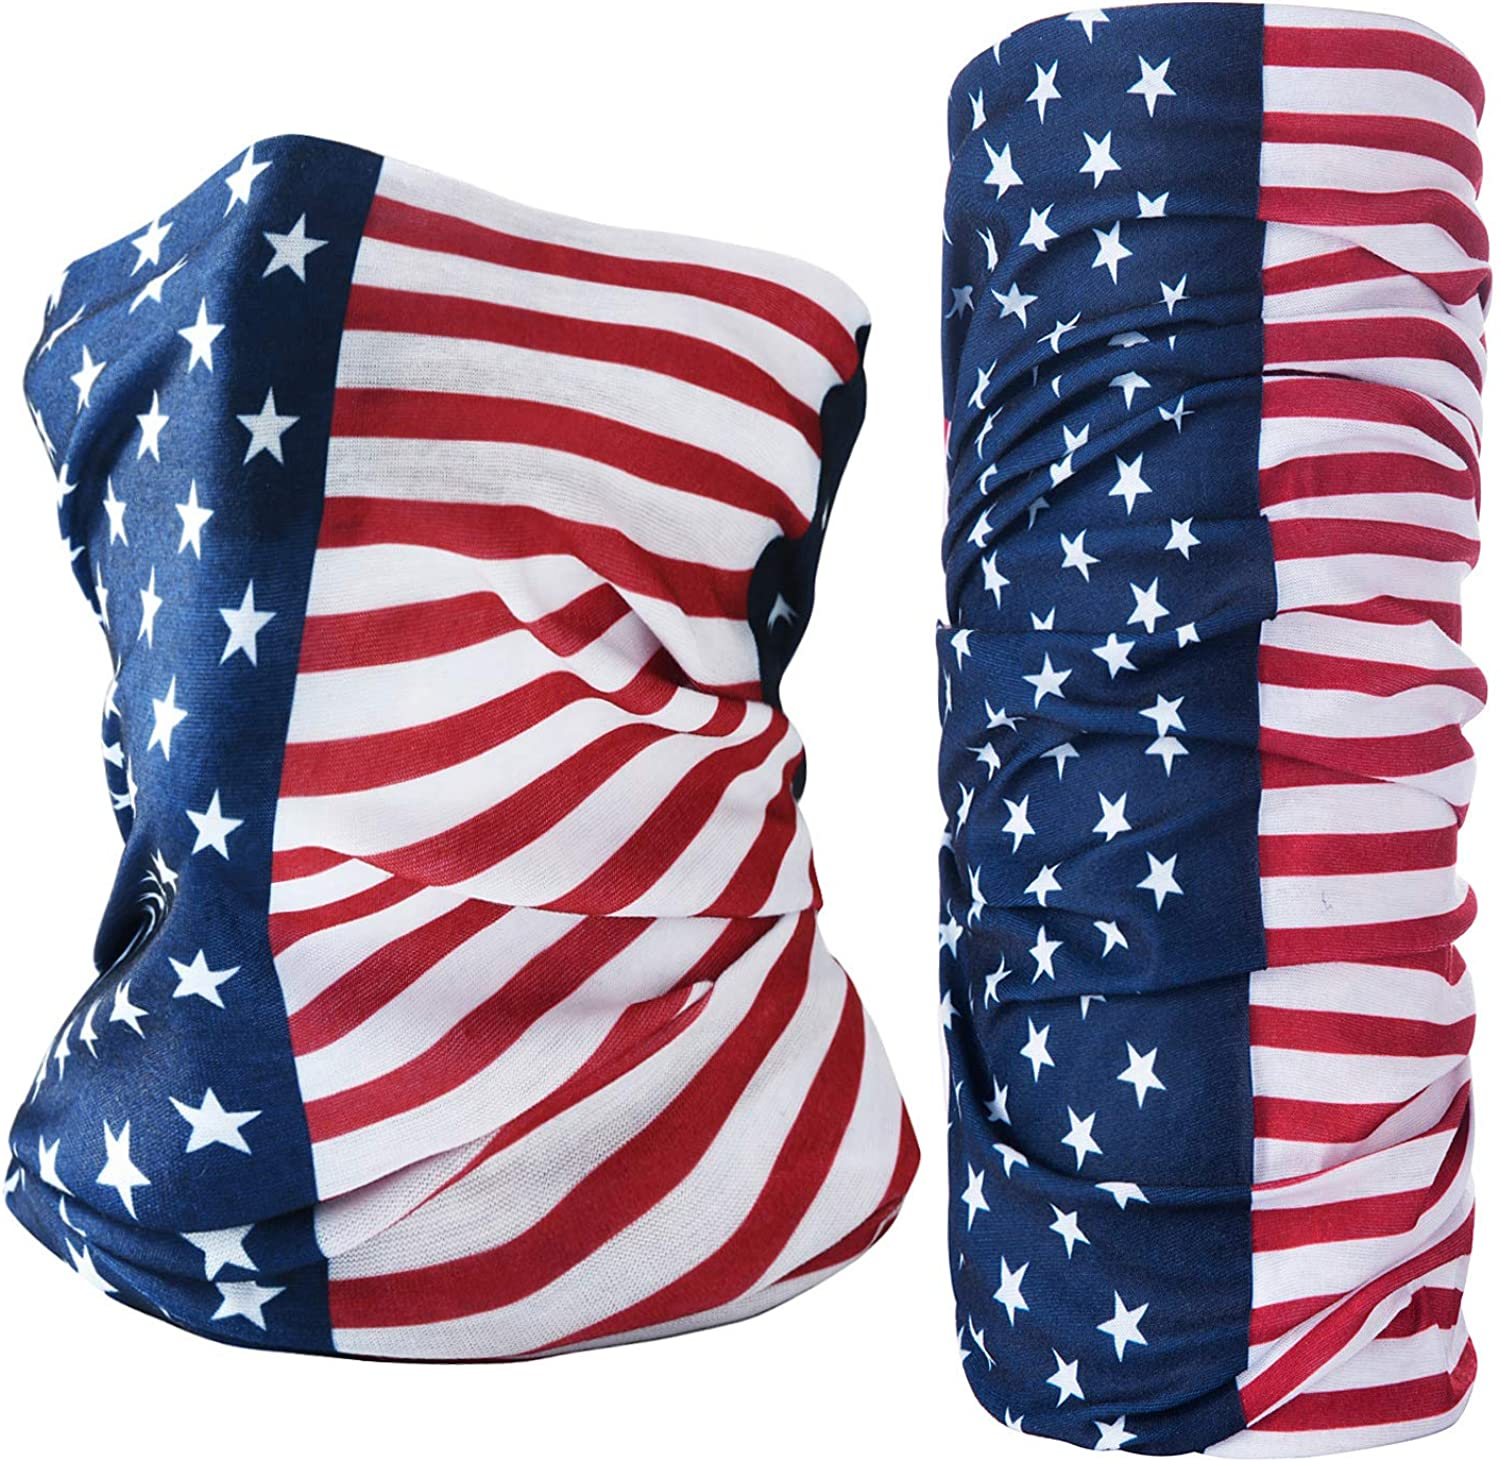 Covering Nose and Mouth Homeflago 2 Pieces American Flag Neck Gaiter Reusable Washable